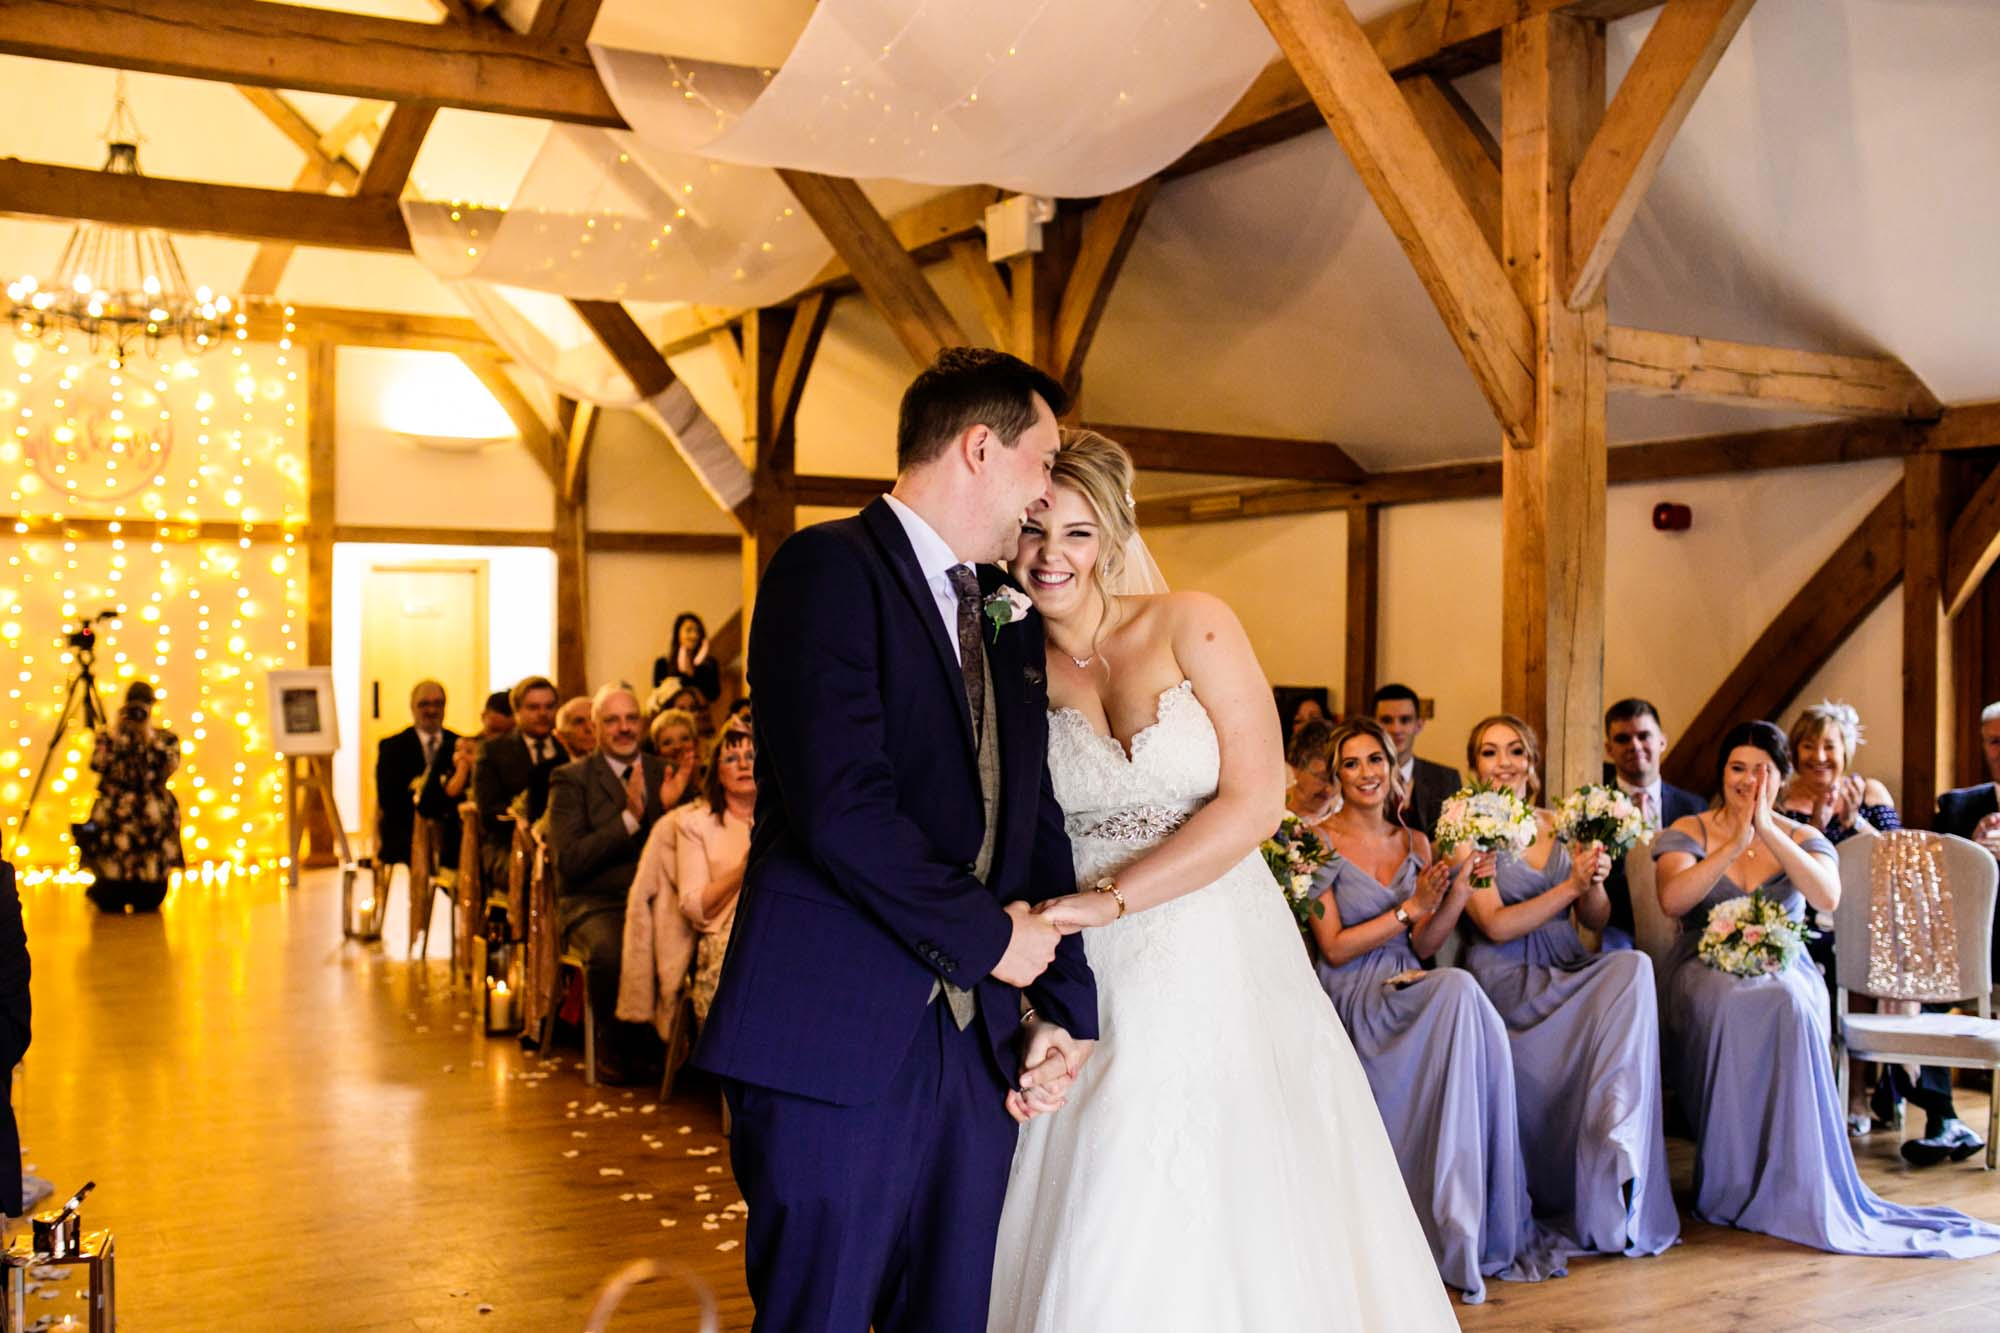 Sandhole Oak Barn Wedding Ceremony Room